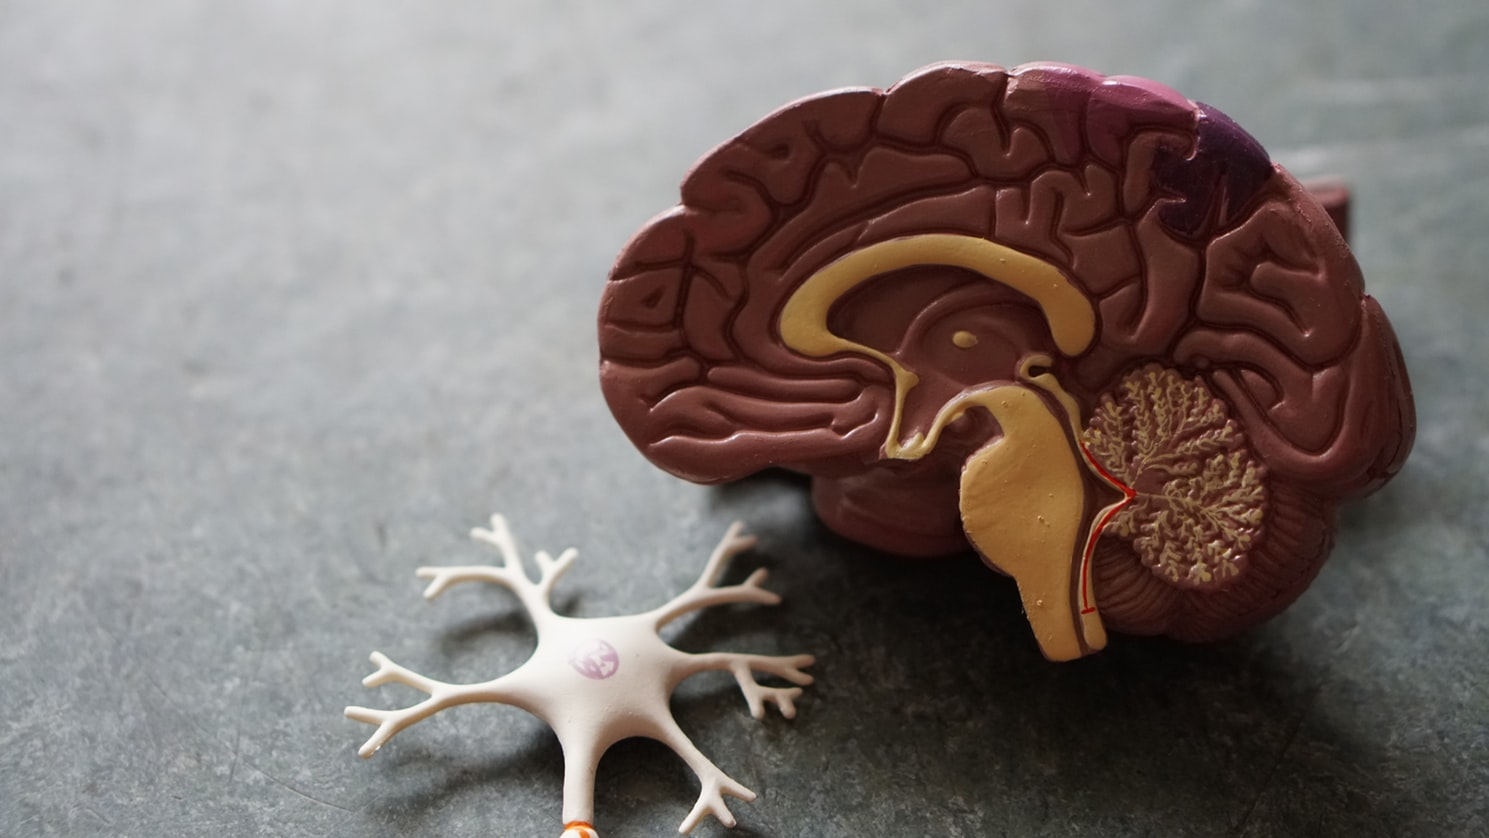 A mold of the brain and an axon. One of the most dangerous illnesses for seniors is alzheimers disease